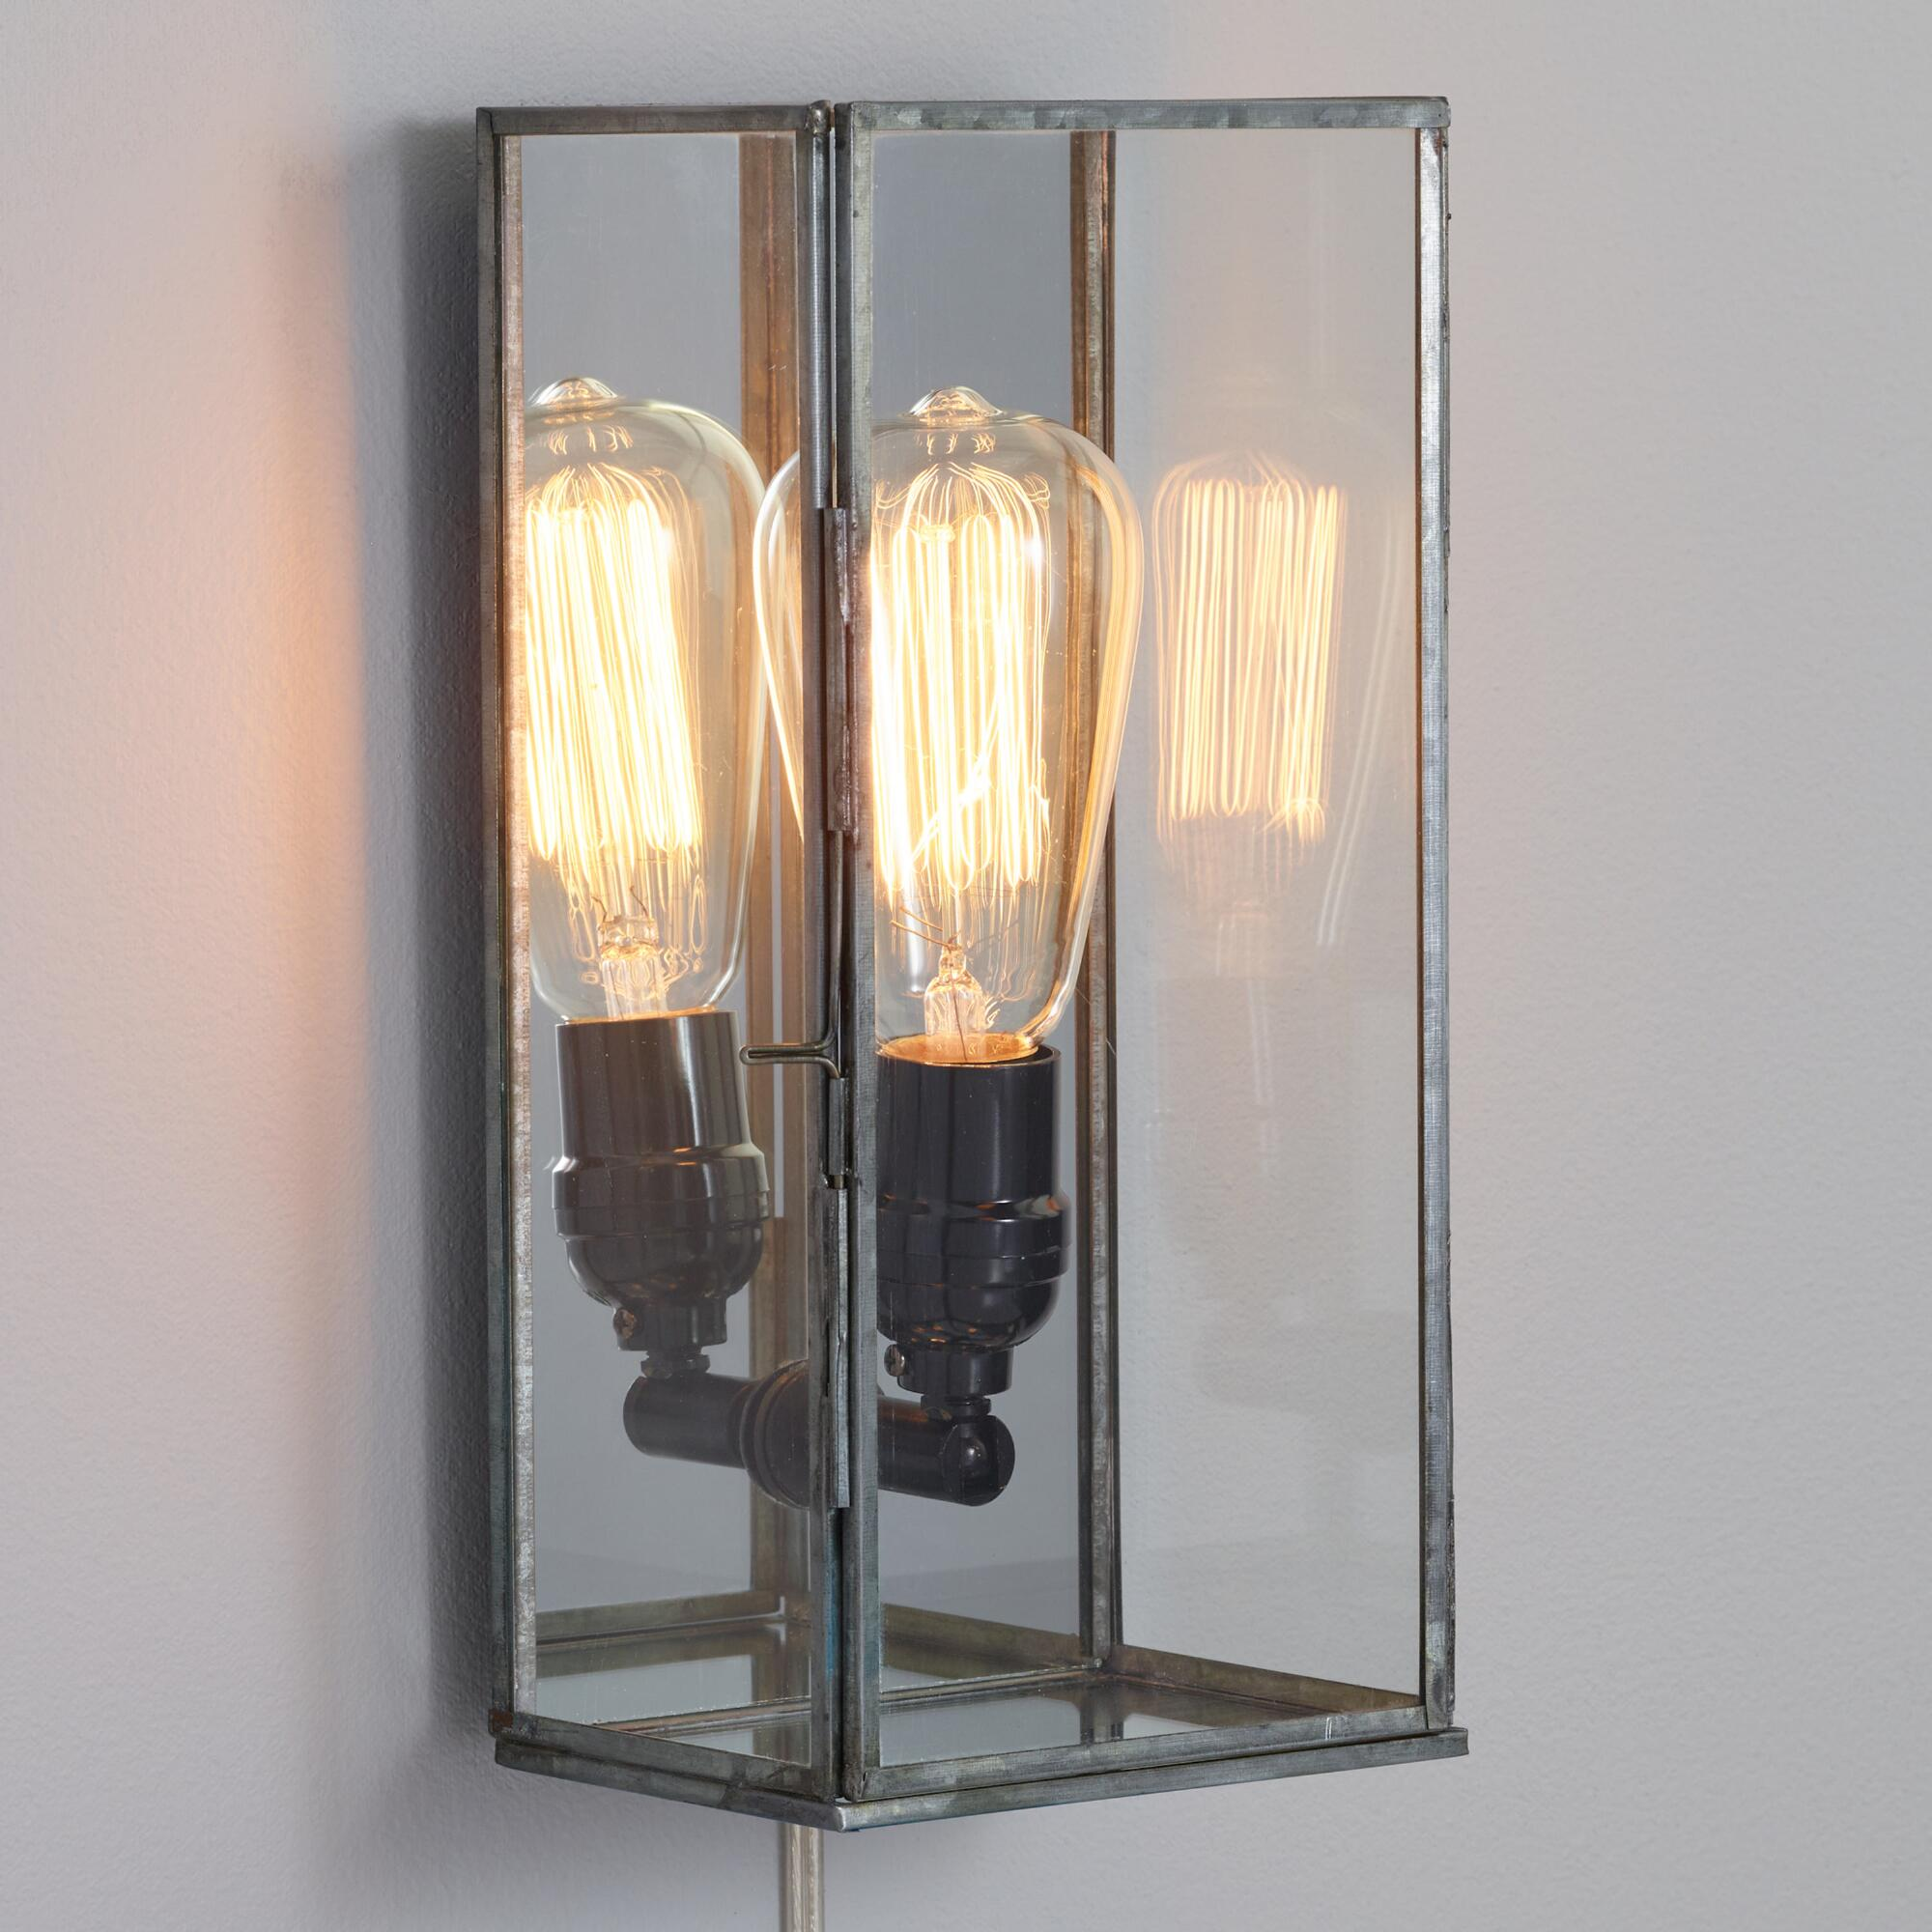 Glass rectangle nora wall sconce world market for Appliques salle de bain ip44